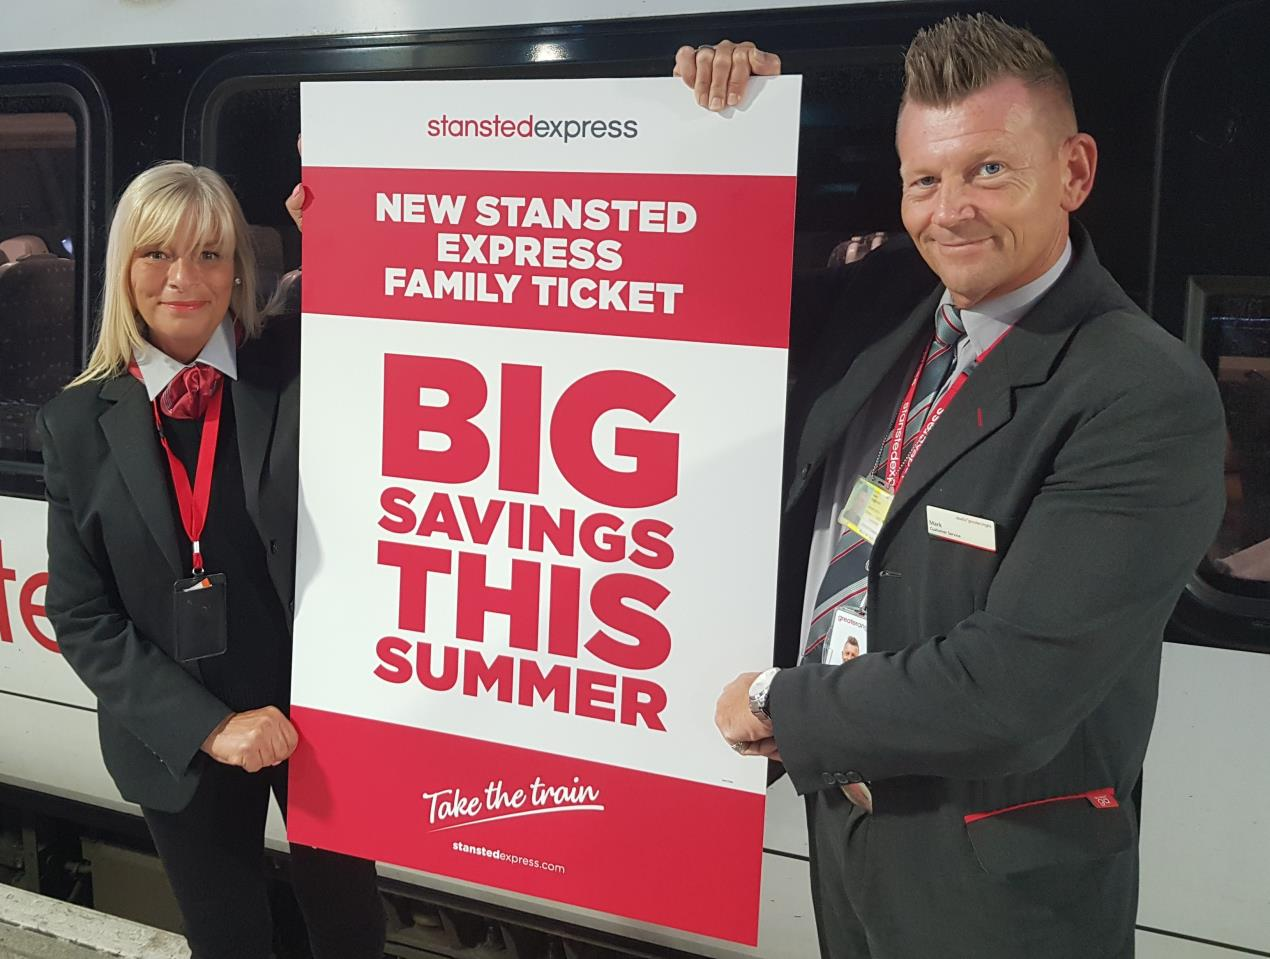 New Stansted Express family ticket - big savings this summer